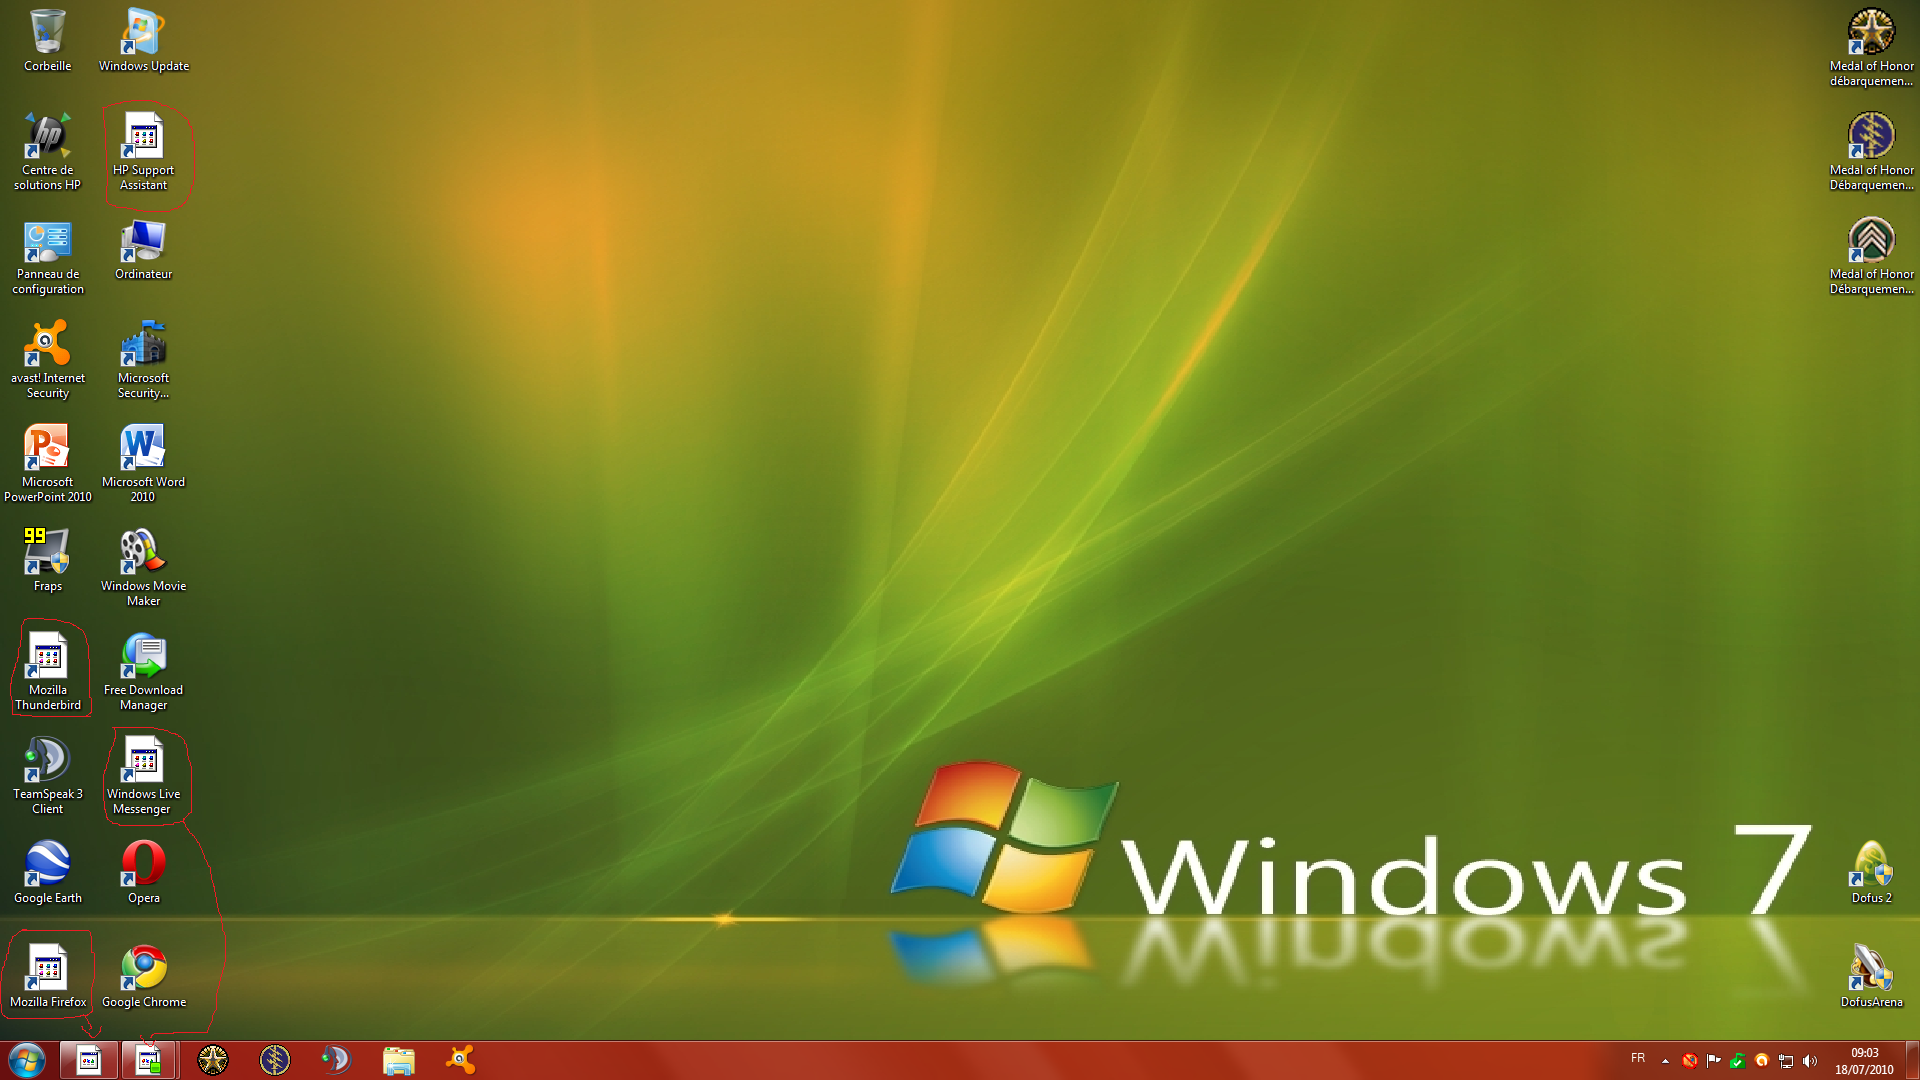 Windows 7 icone sur le bureau r solu for Windows 7 bureau vide